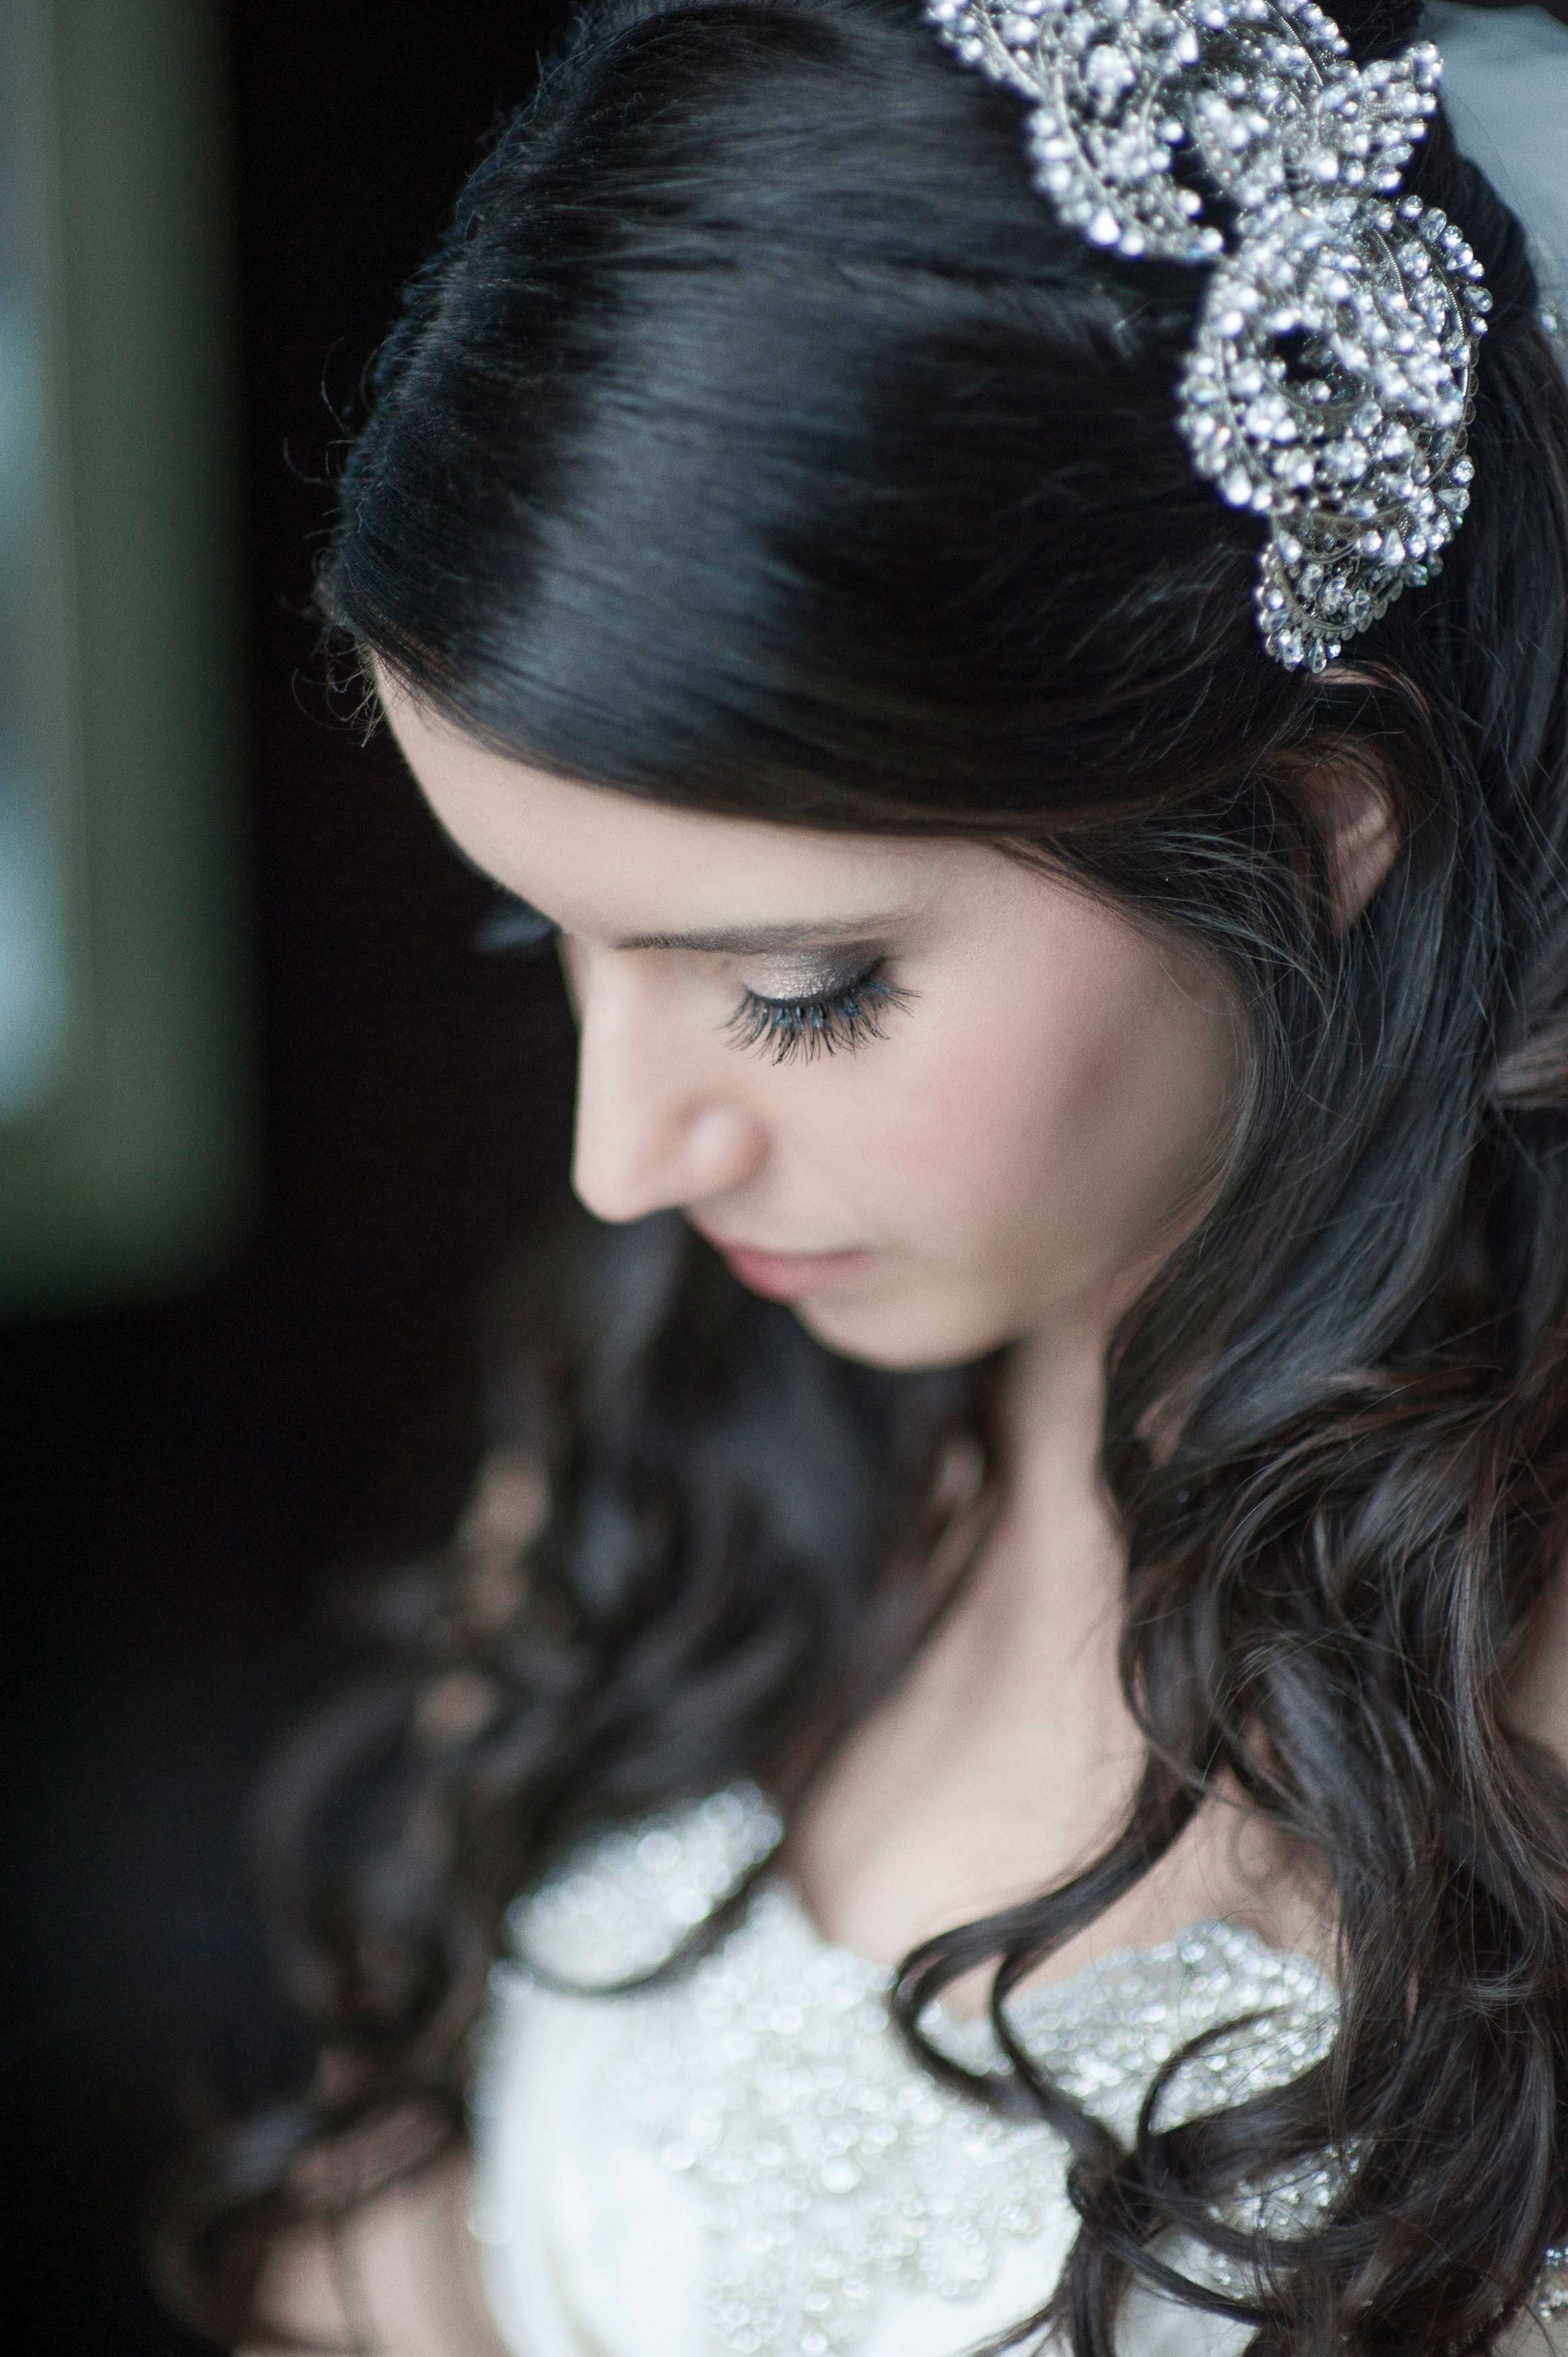 Bride in jewel ball gown with crystal hair accessory